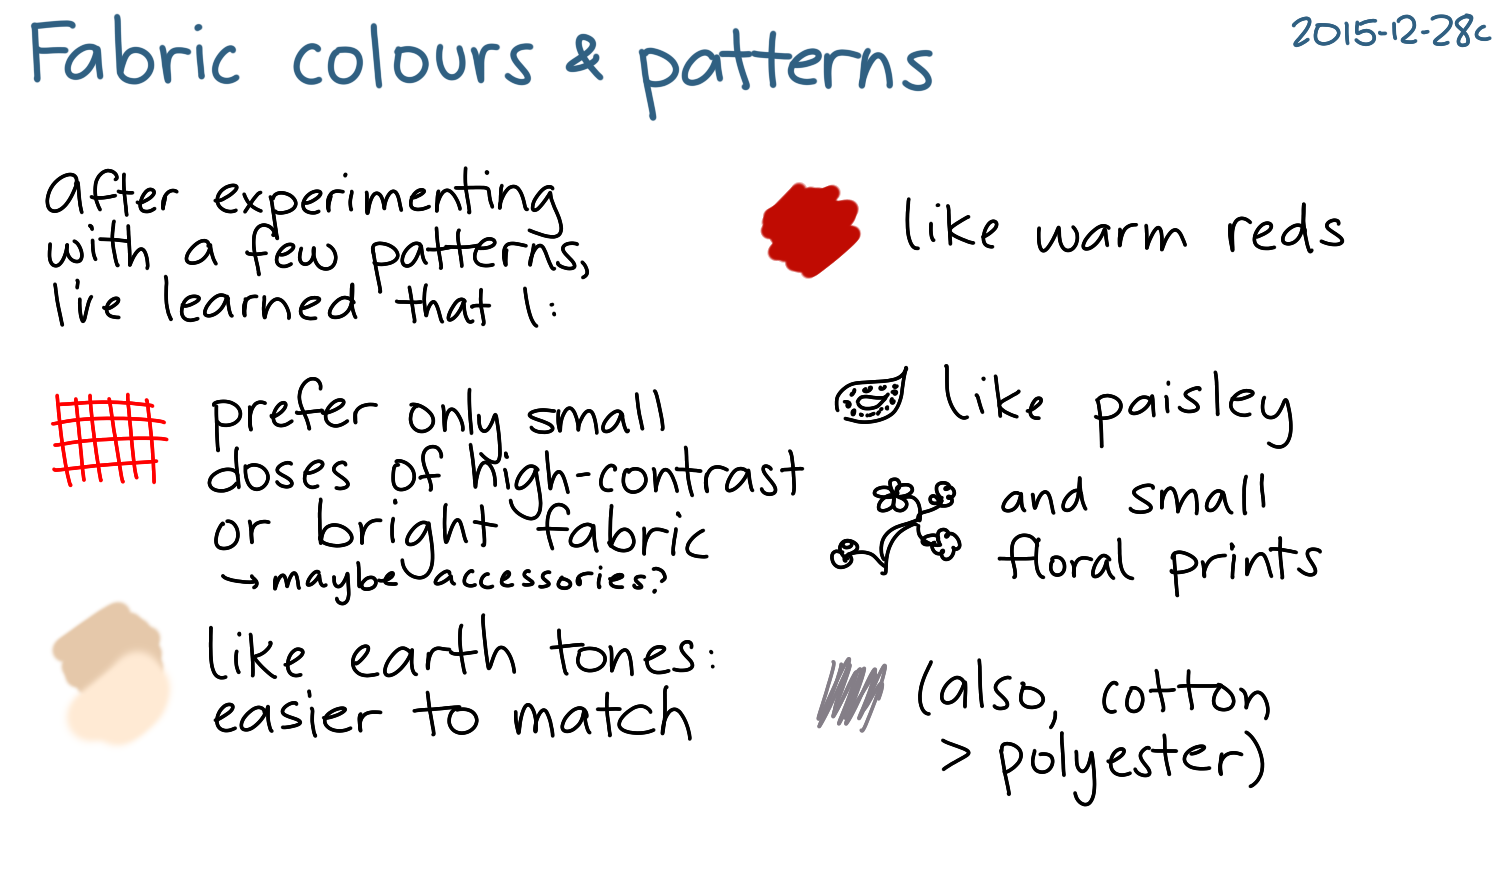 2015-12-28c Fabric colours and patterns -- index card #sewing #colour #style.png